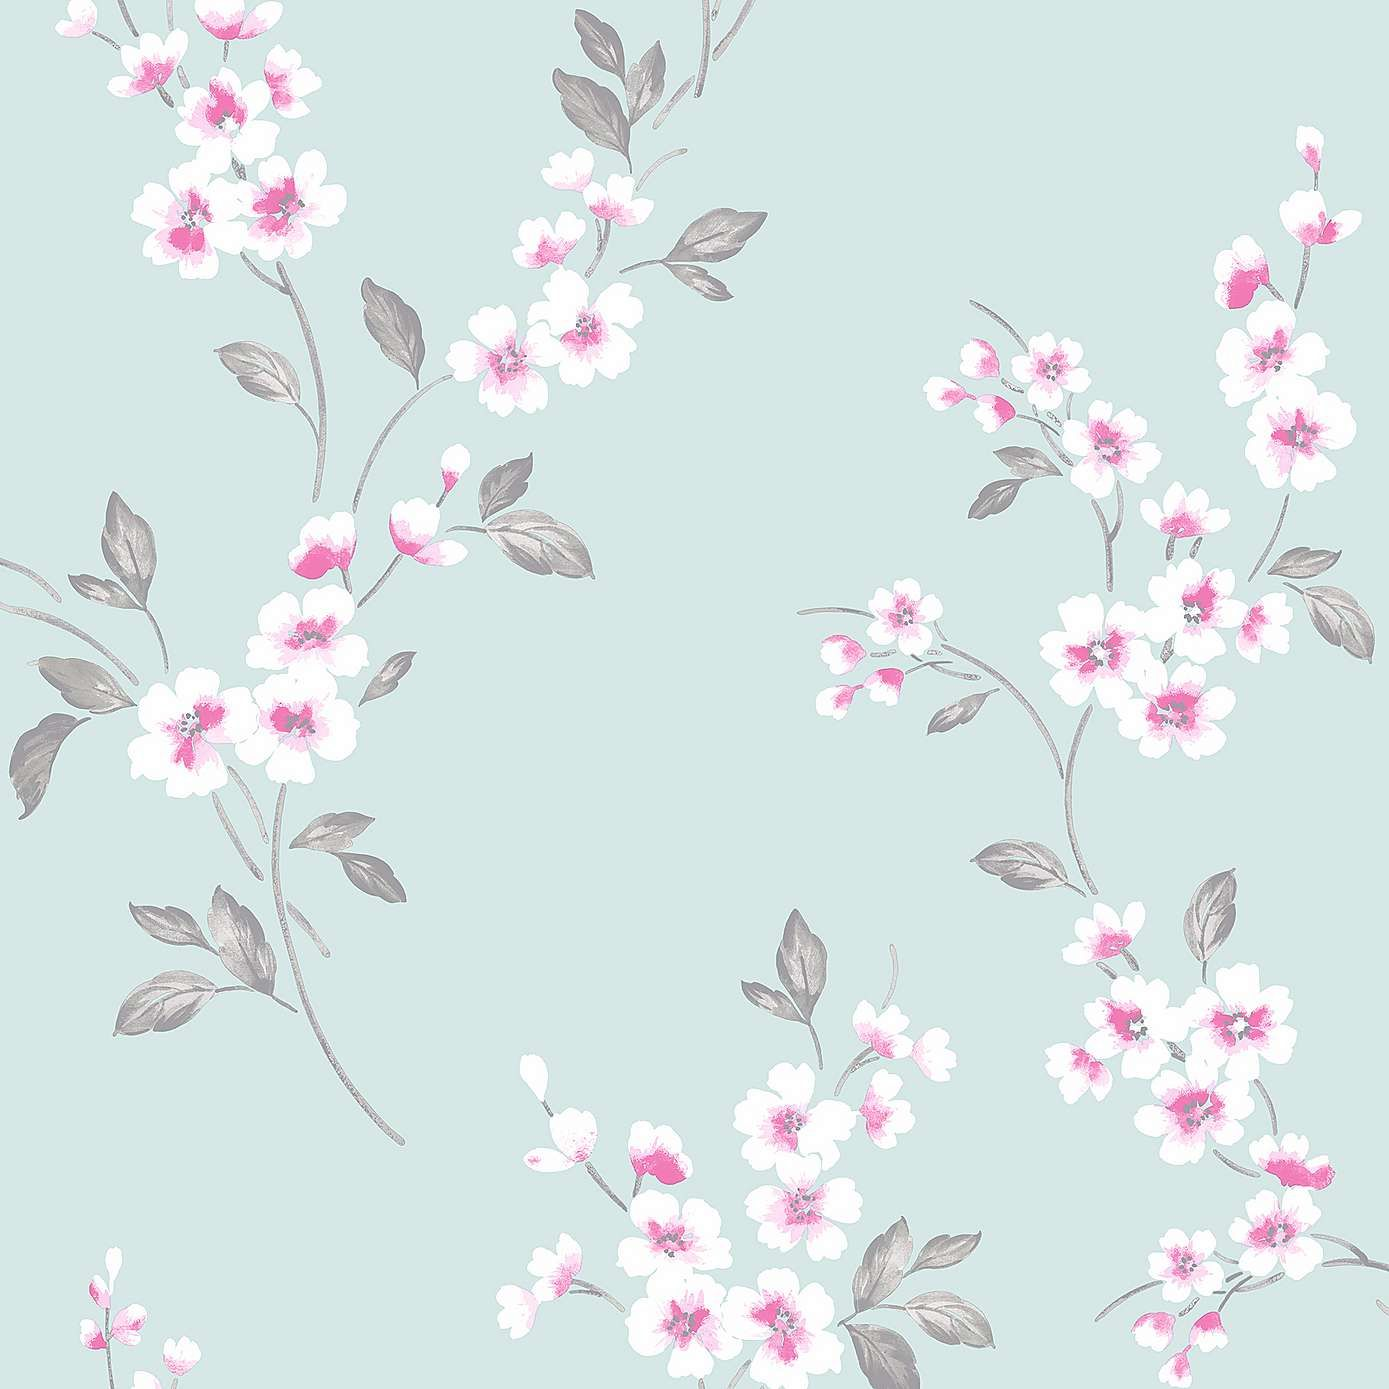 In An Elegant Duck Egg Blue Colourway, This Patterned Wallpaper